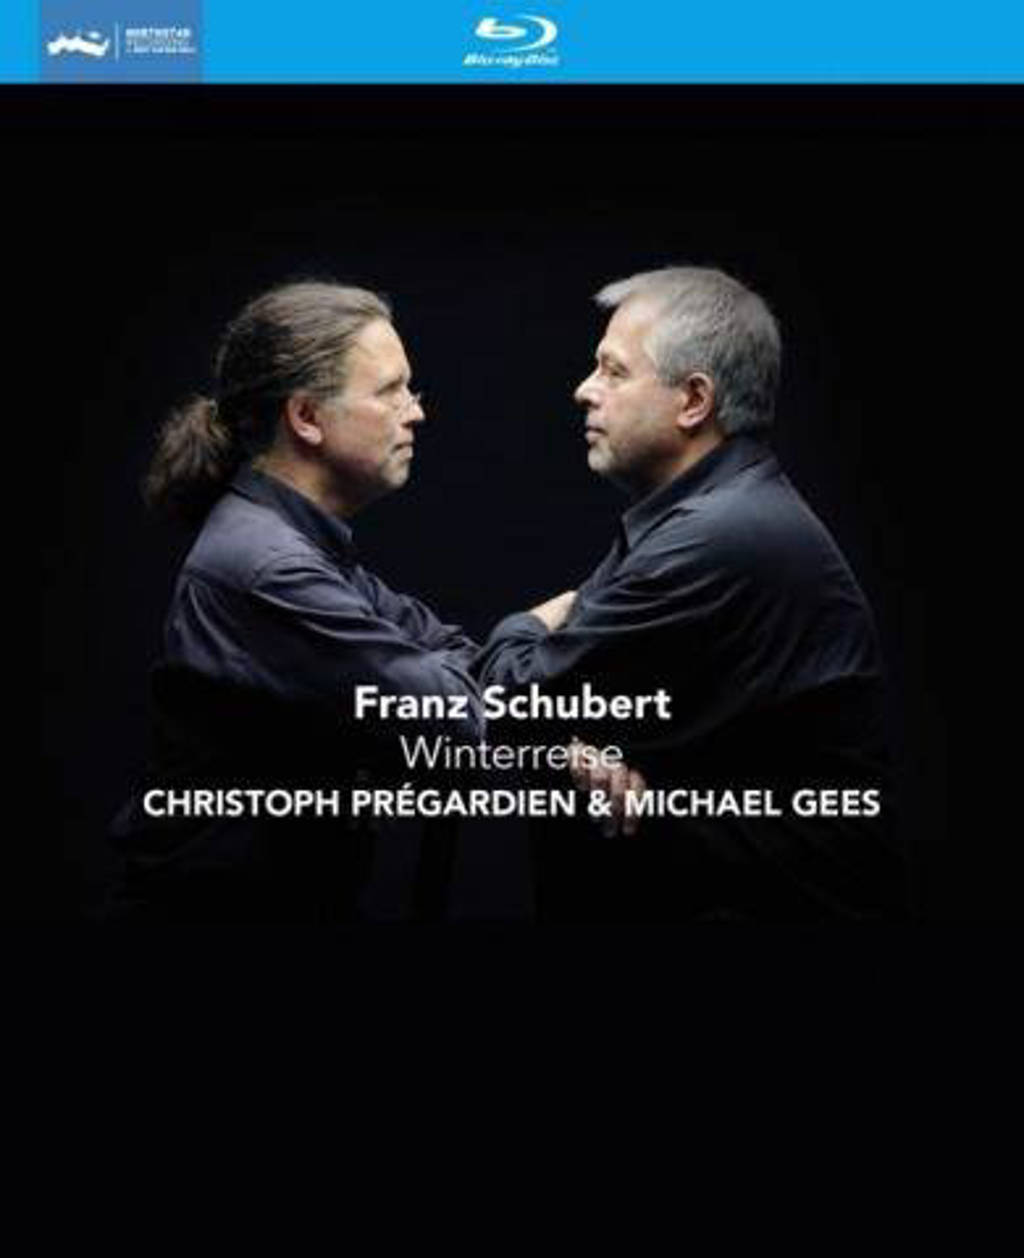 Pregardien, Christoph / Gees, Micha - Winterreise (Bluray) (Blu-ray)